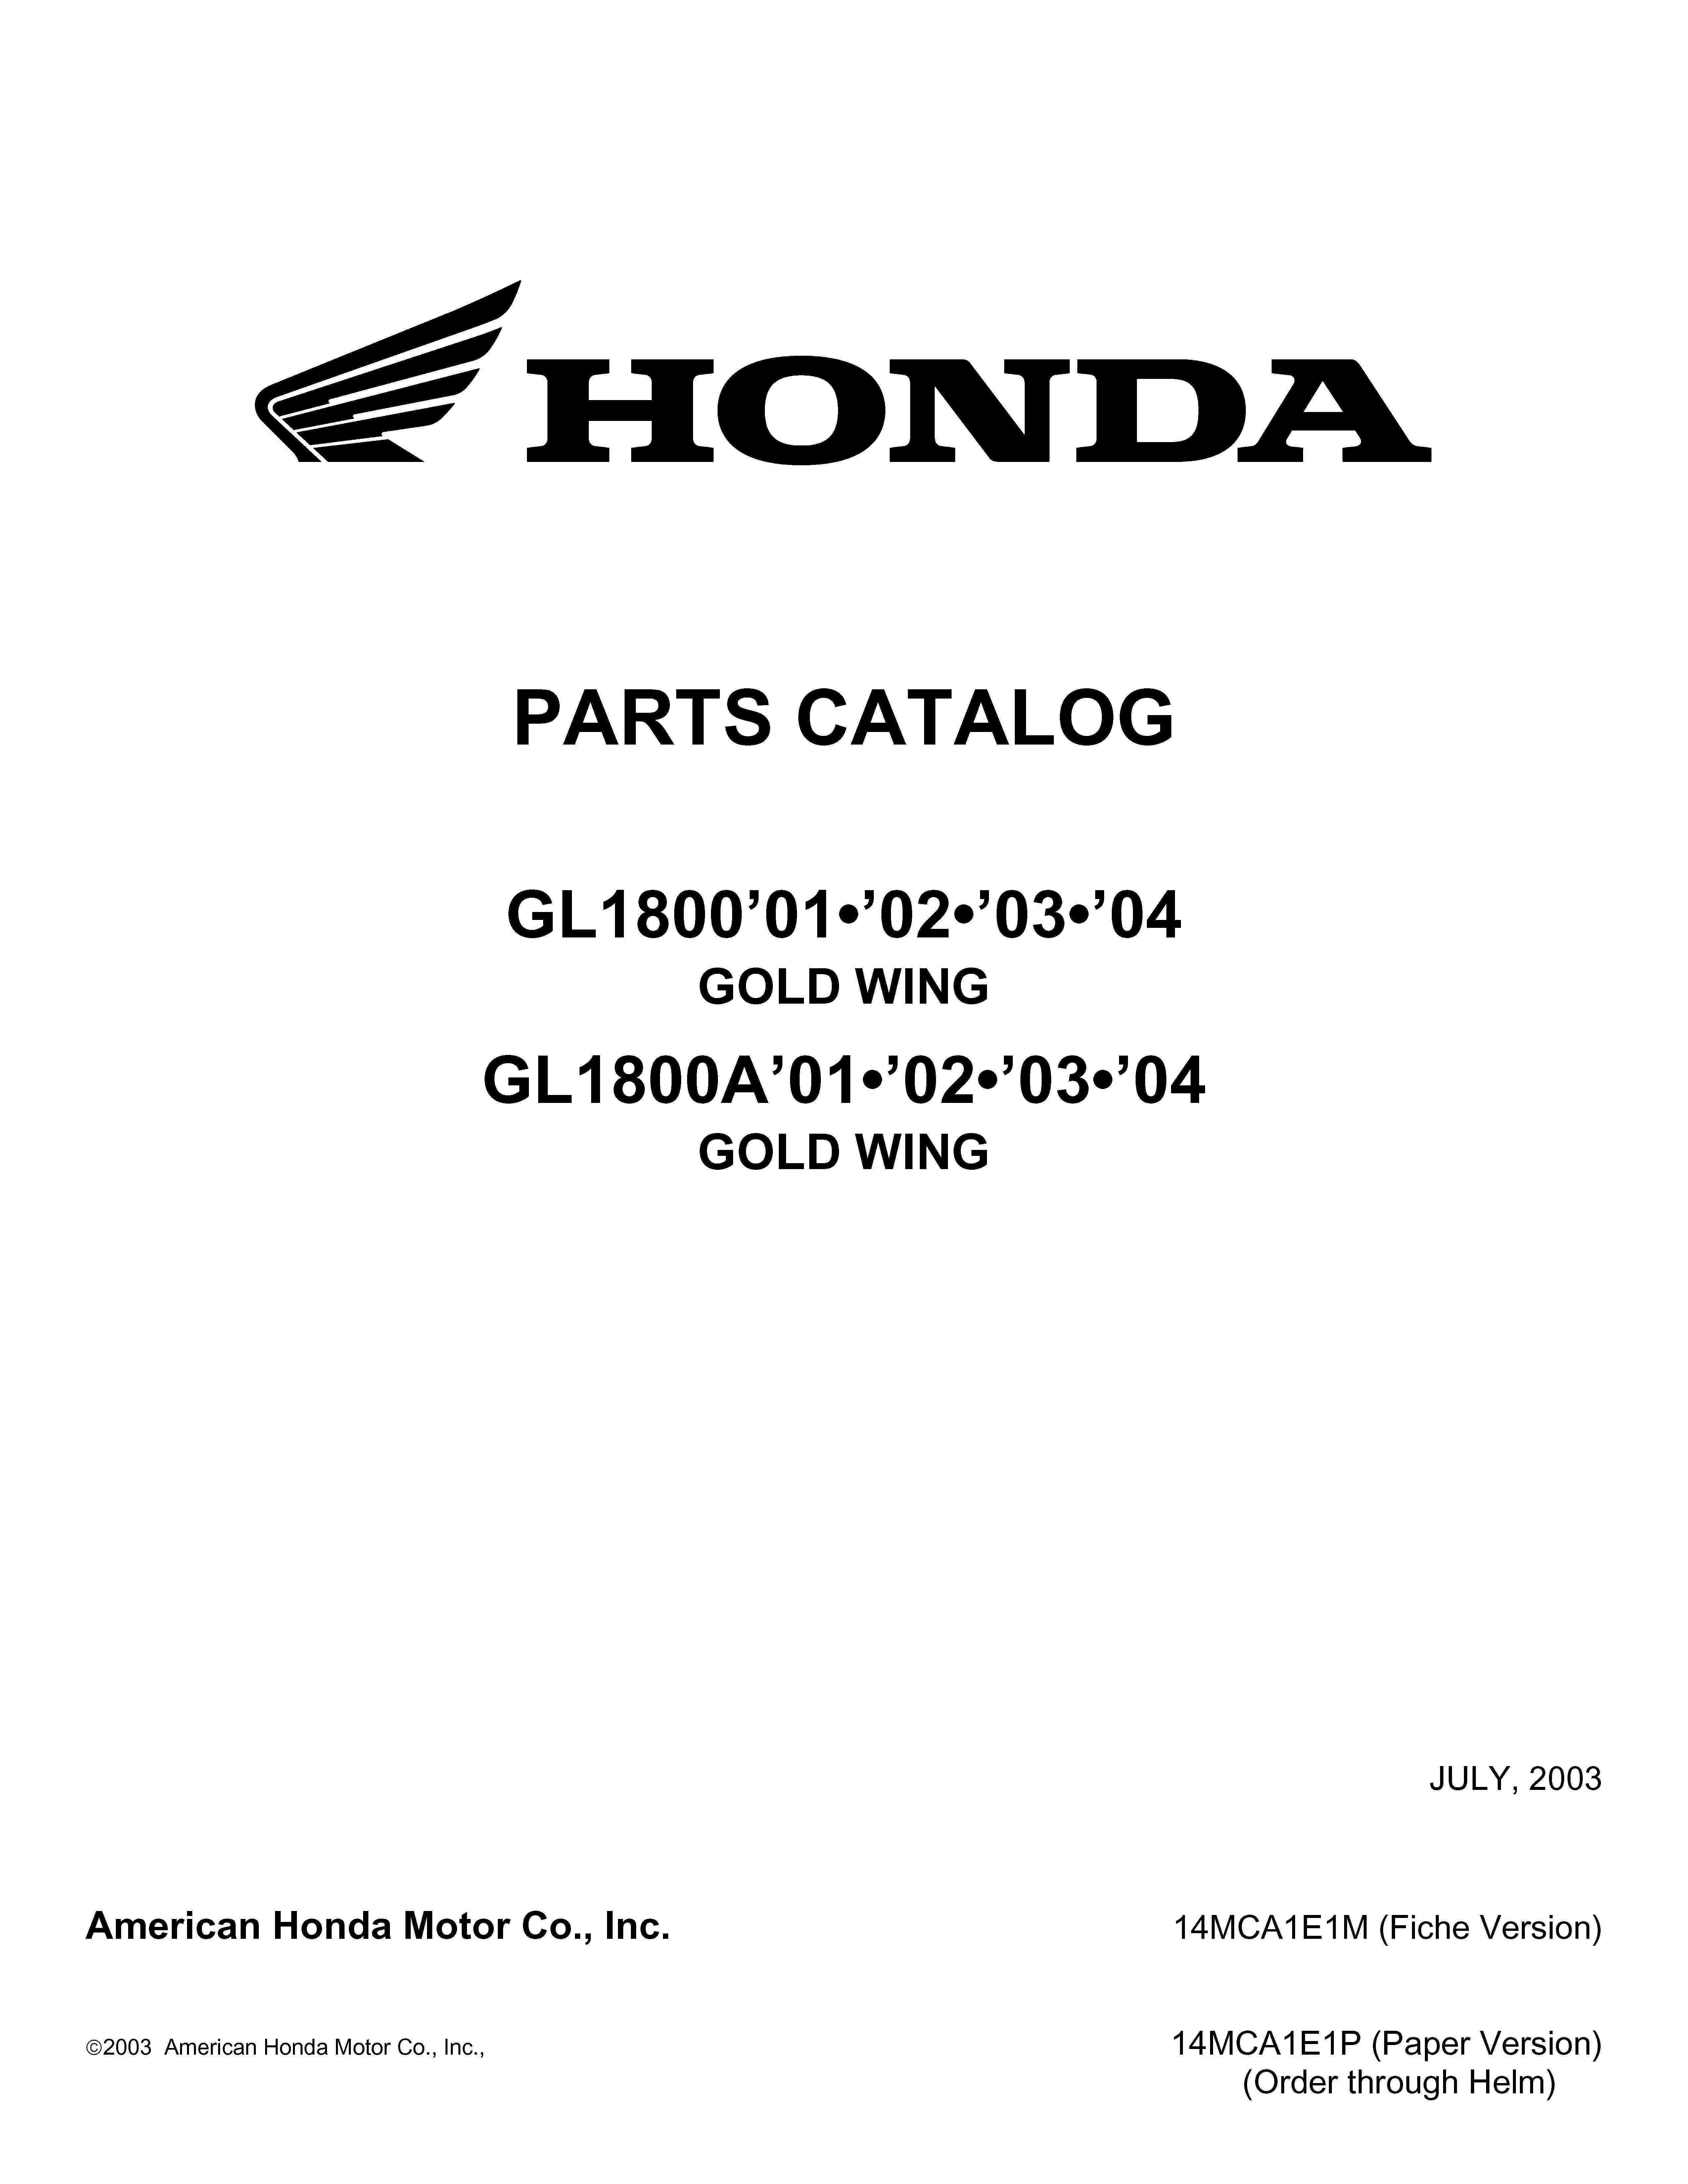 Parts list for Honda GL1800 (2001-2004)